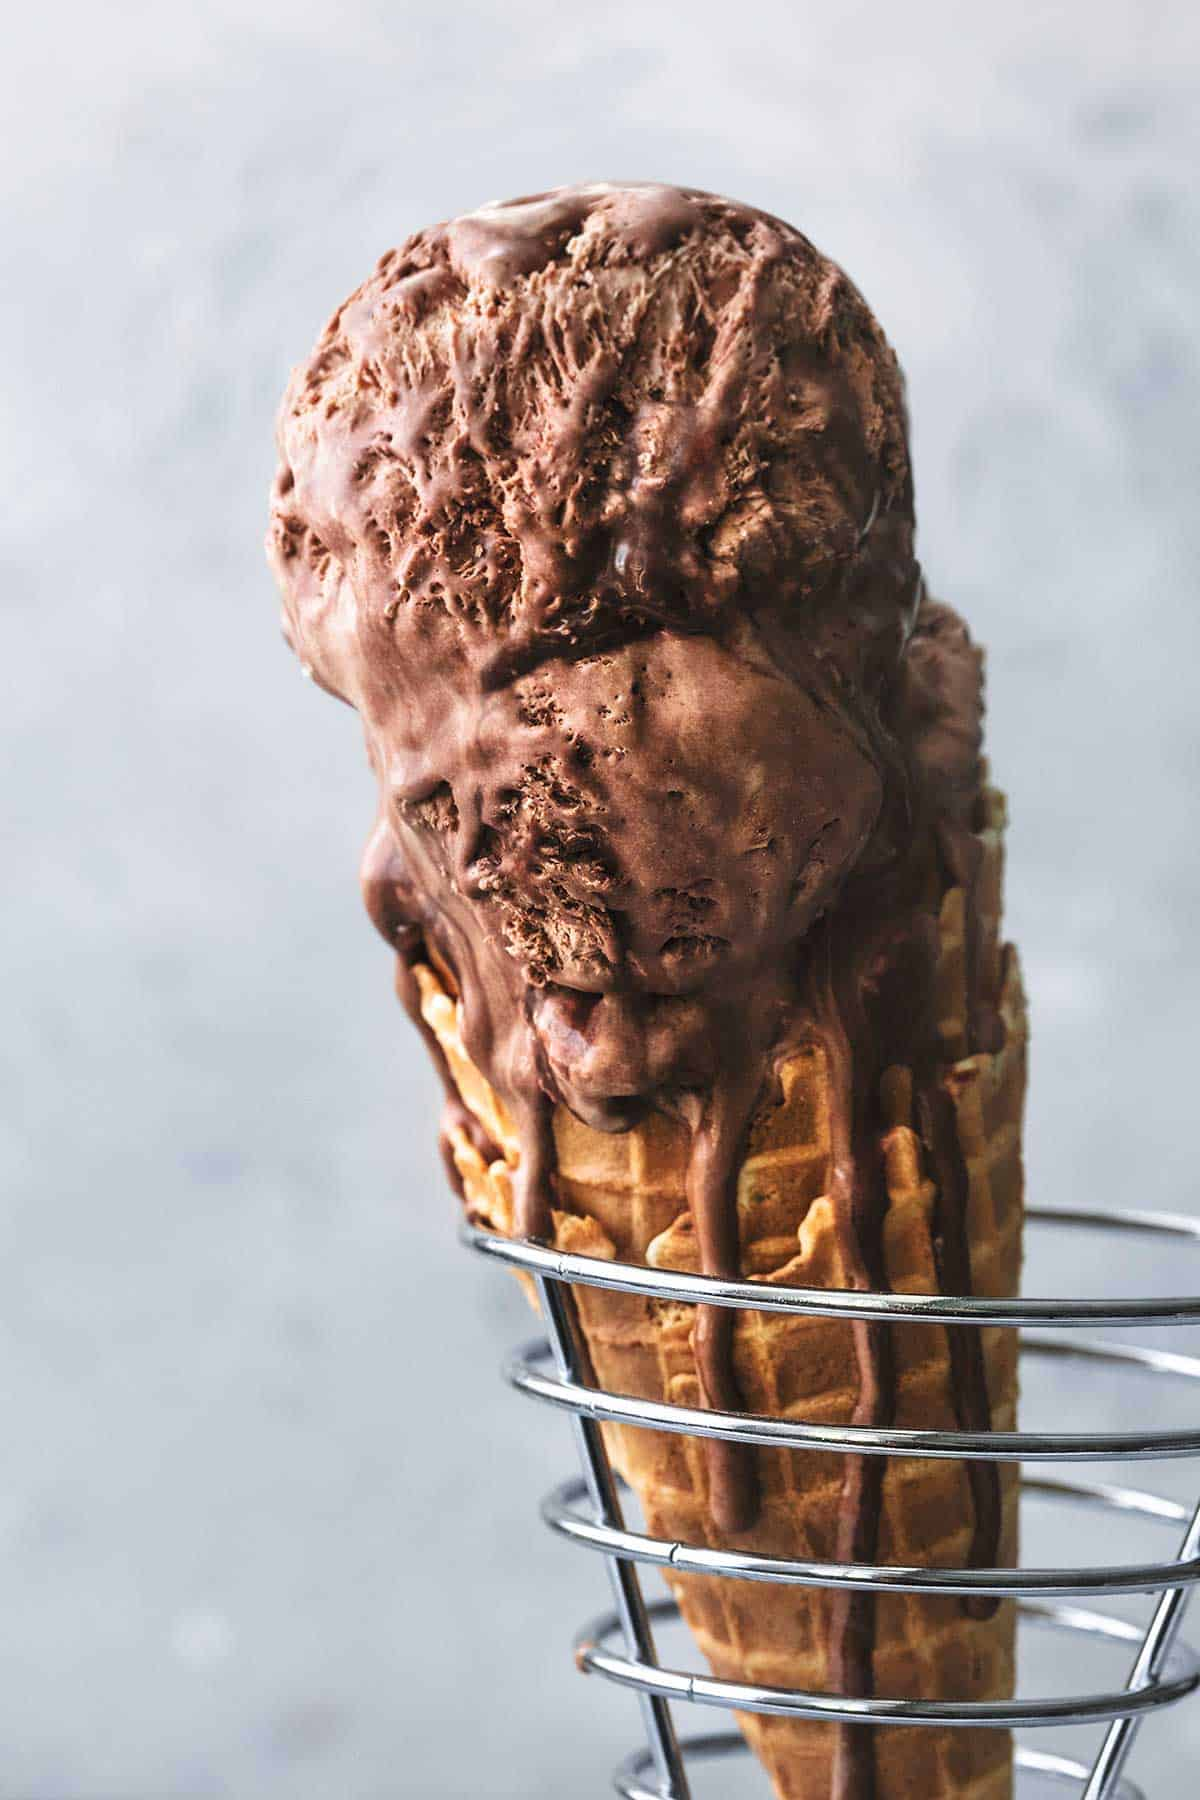 double scoop of chocolate ice cream in waffle cone